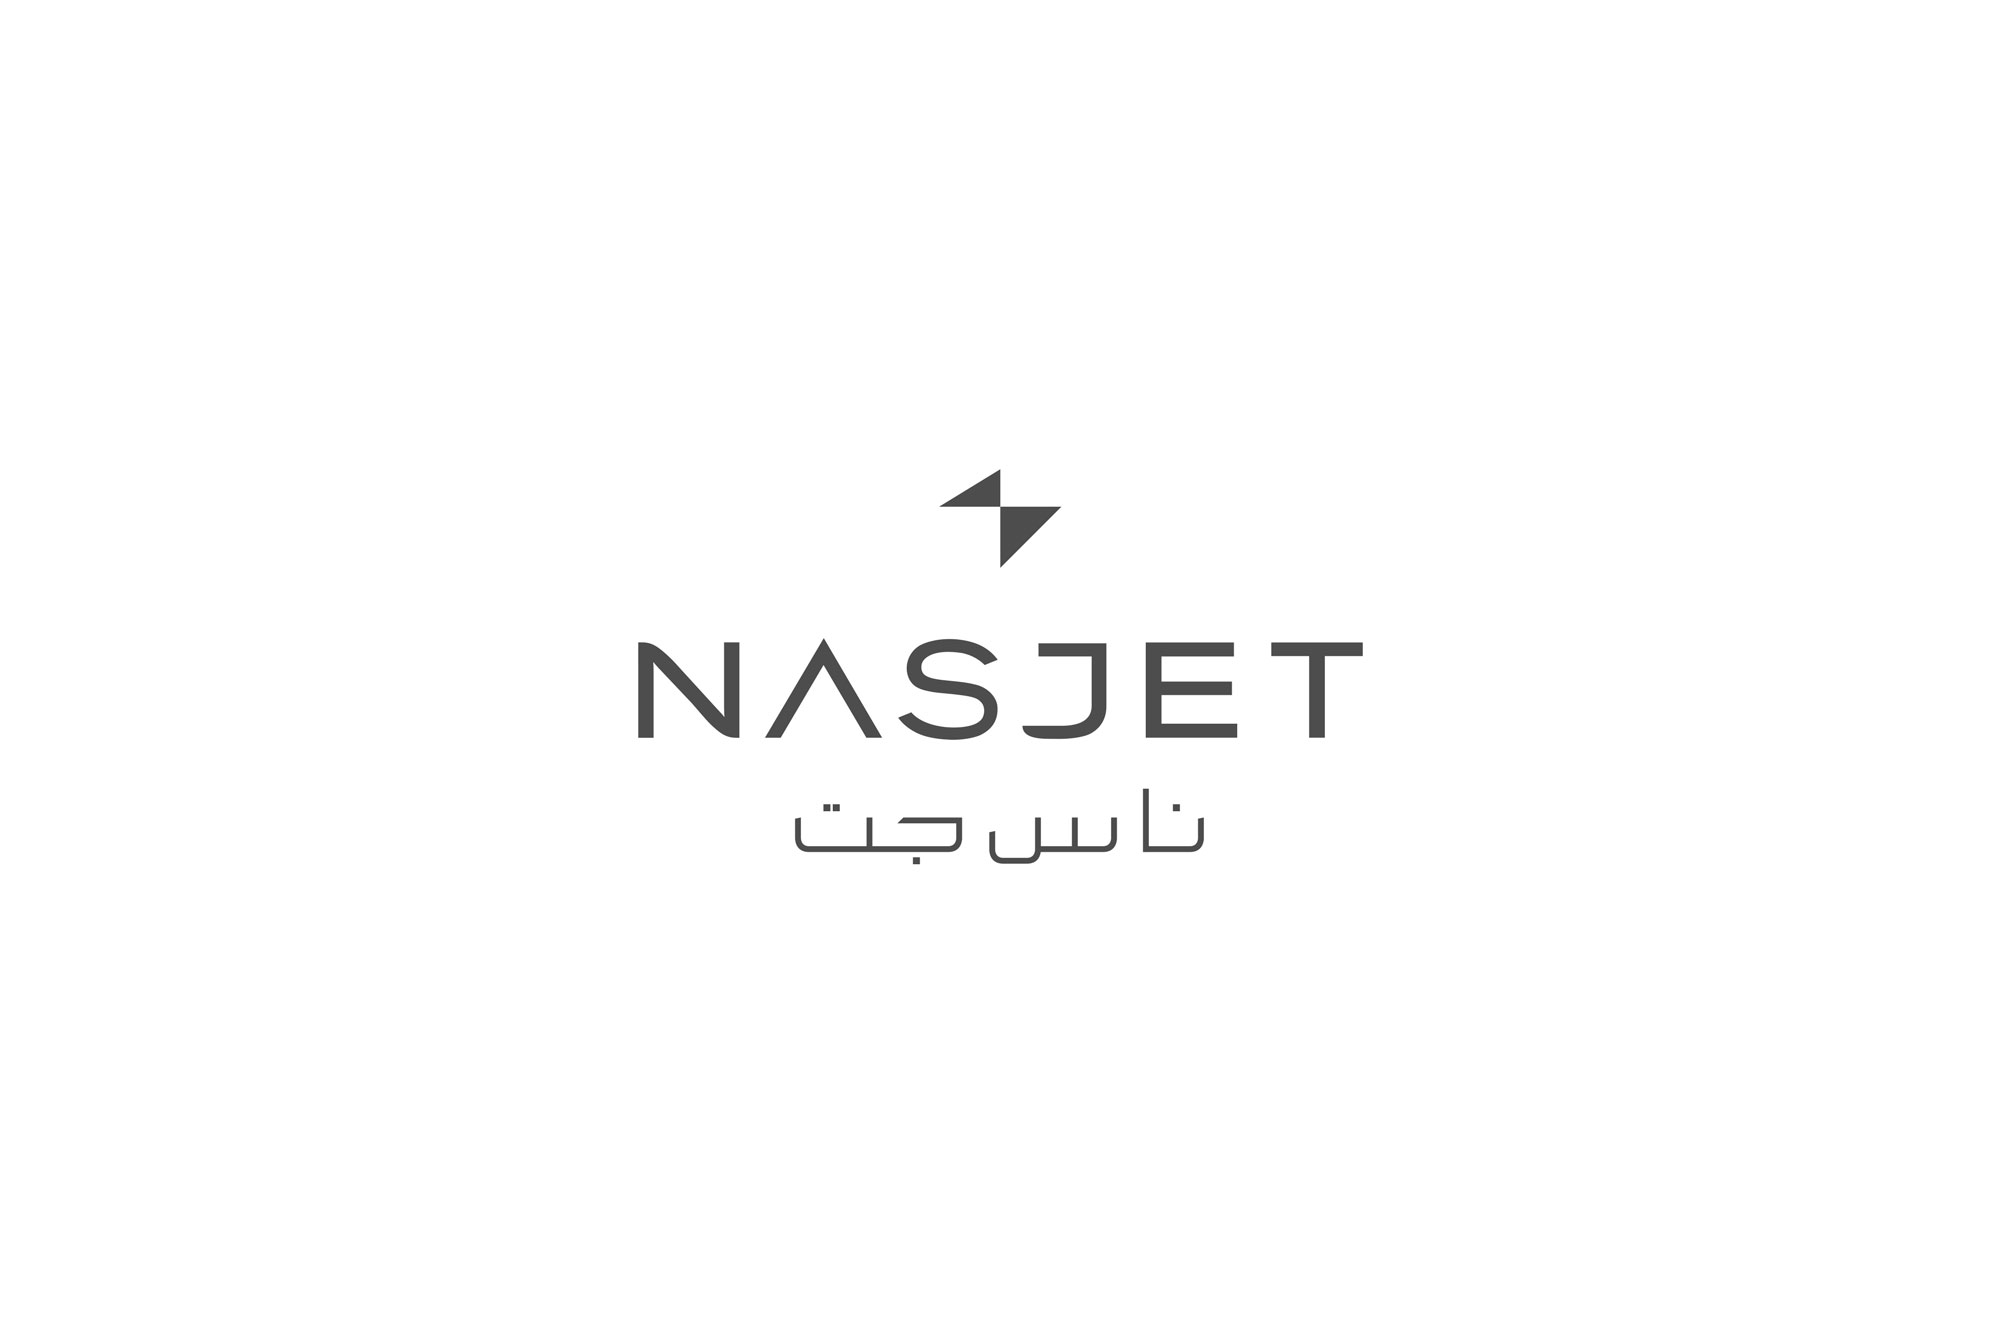 NasJet-Work-By-YaStudio-01c